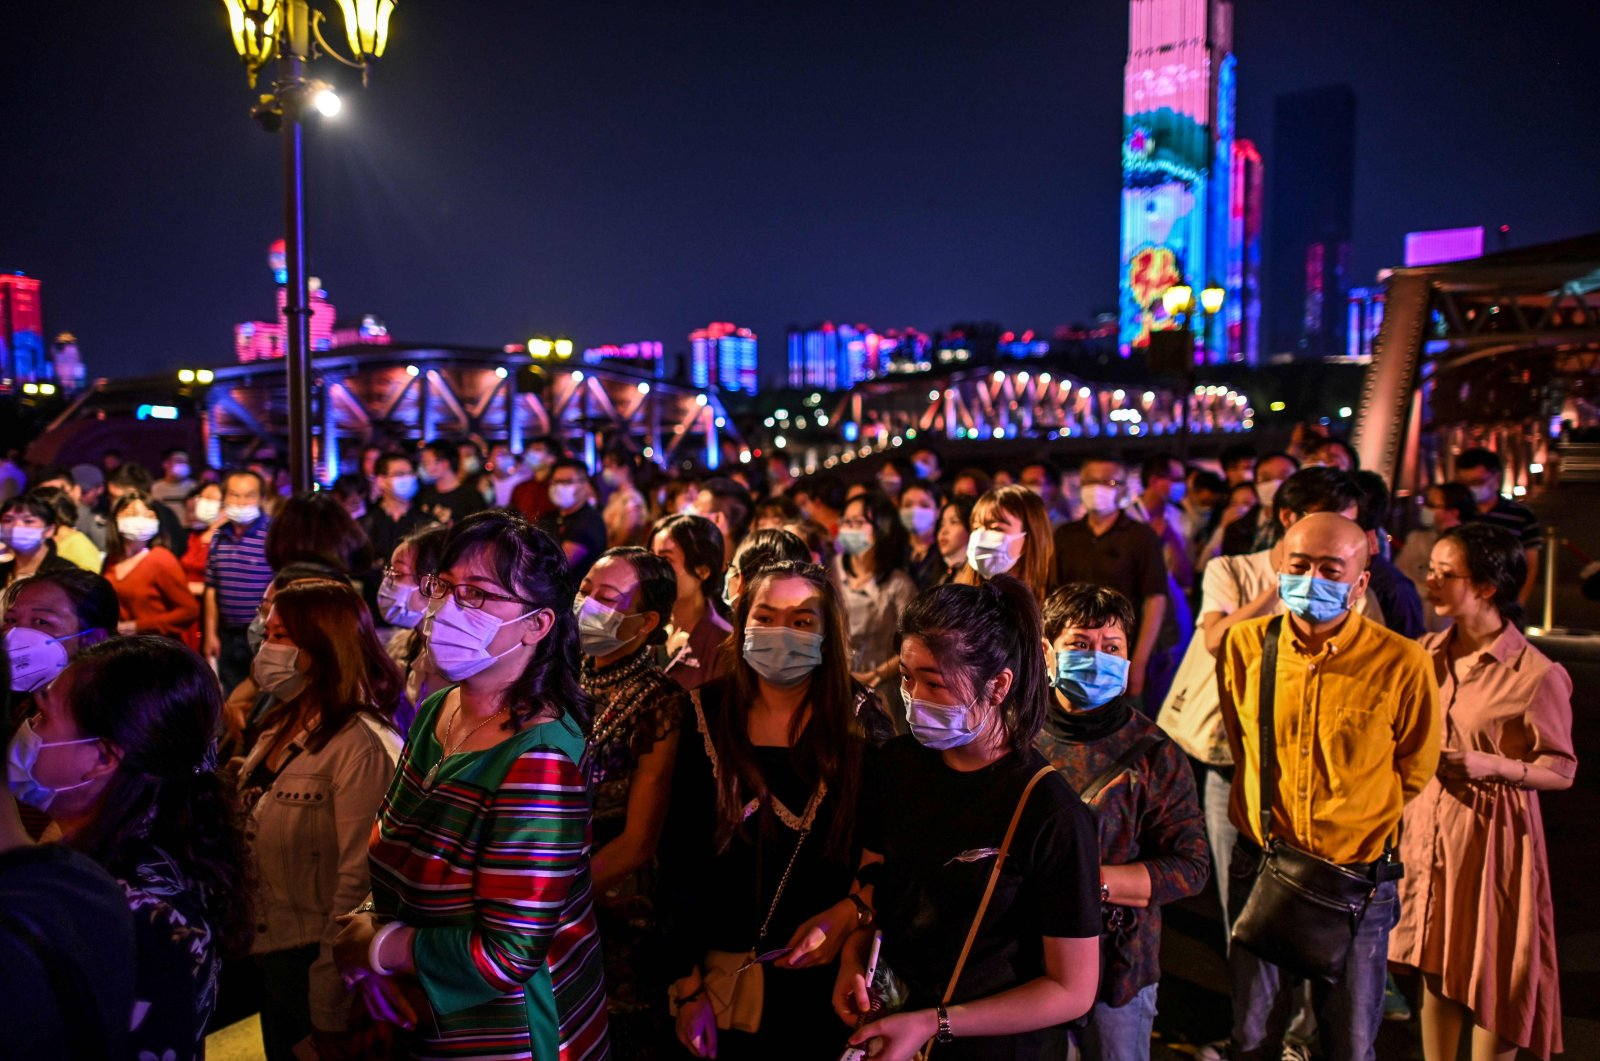 Passengers wearing facemasks as a preventive measure against the coronavirus wait to board a last century-style boat, featuring a theatrical drama set between the 1920s and 1930s in Wuhan, central Hubei province, China, Sept. 27, 2020. (AFP Photo)